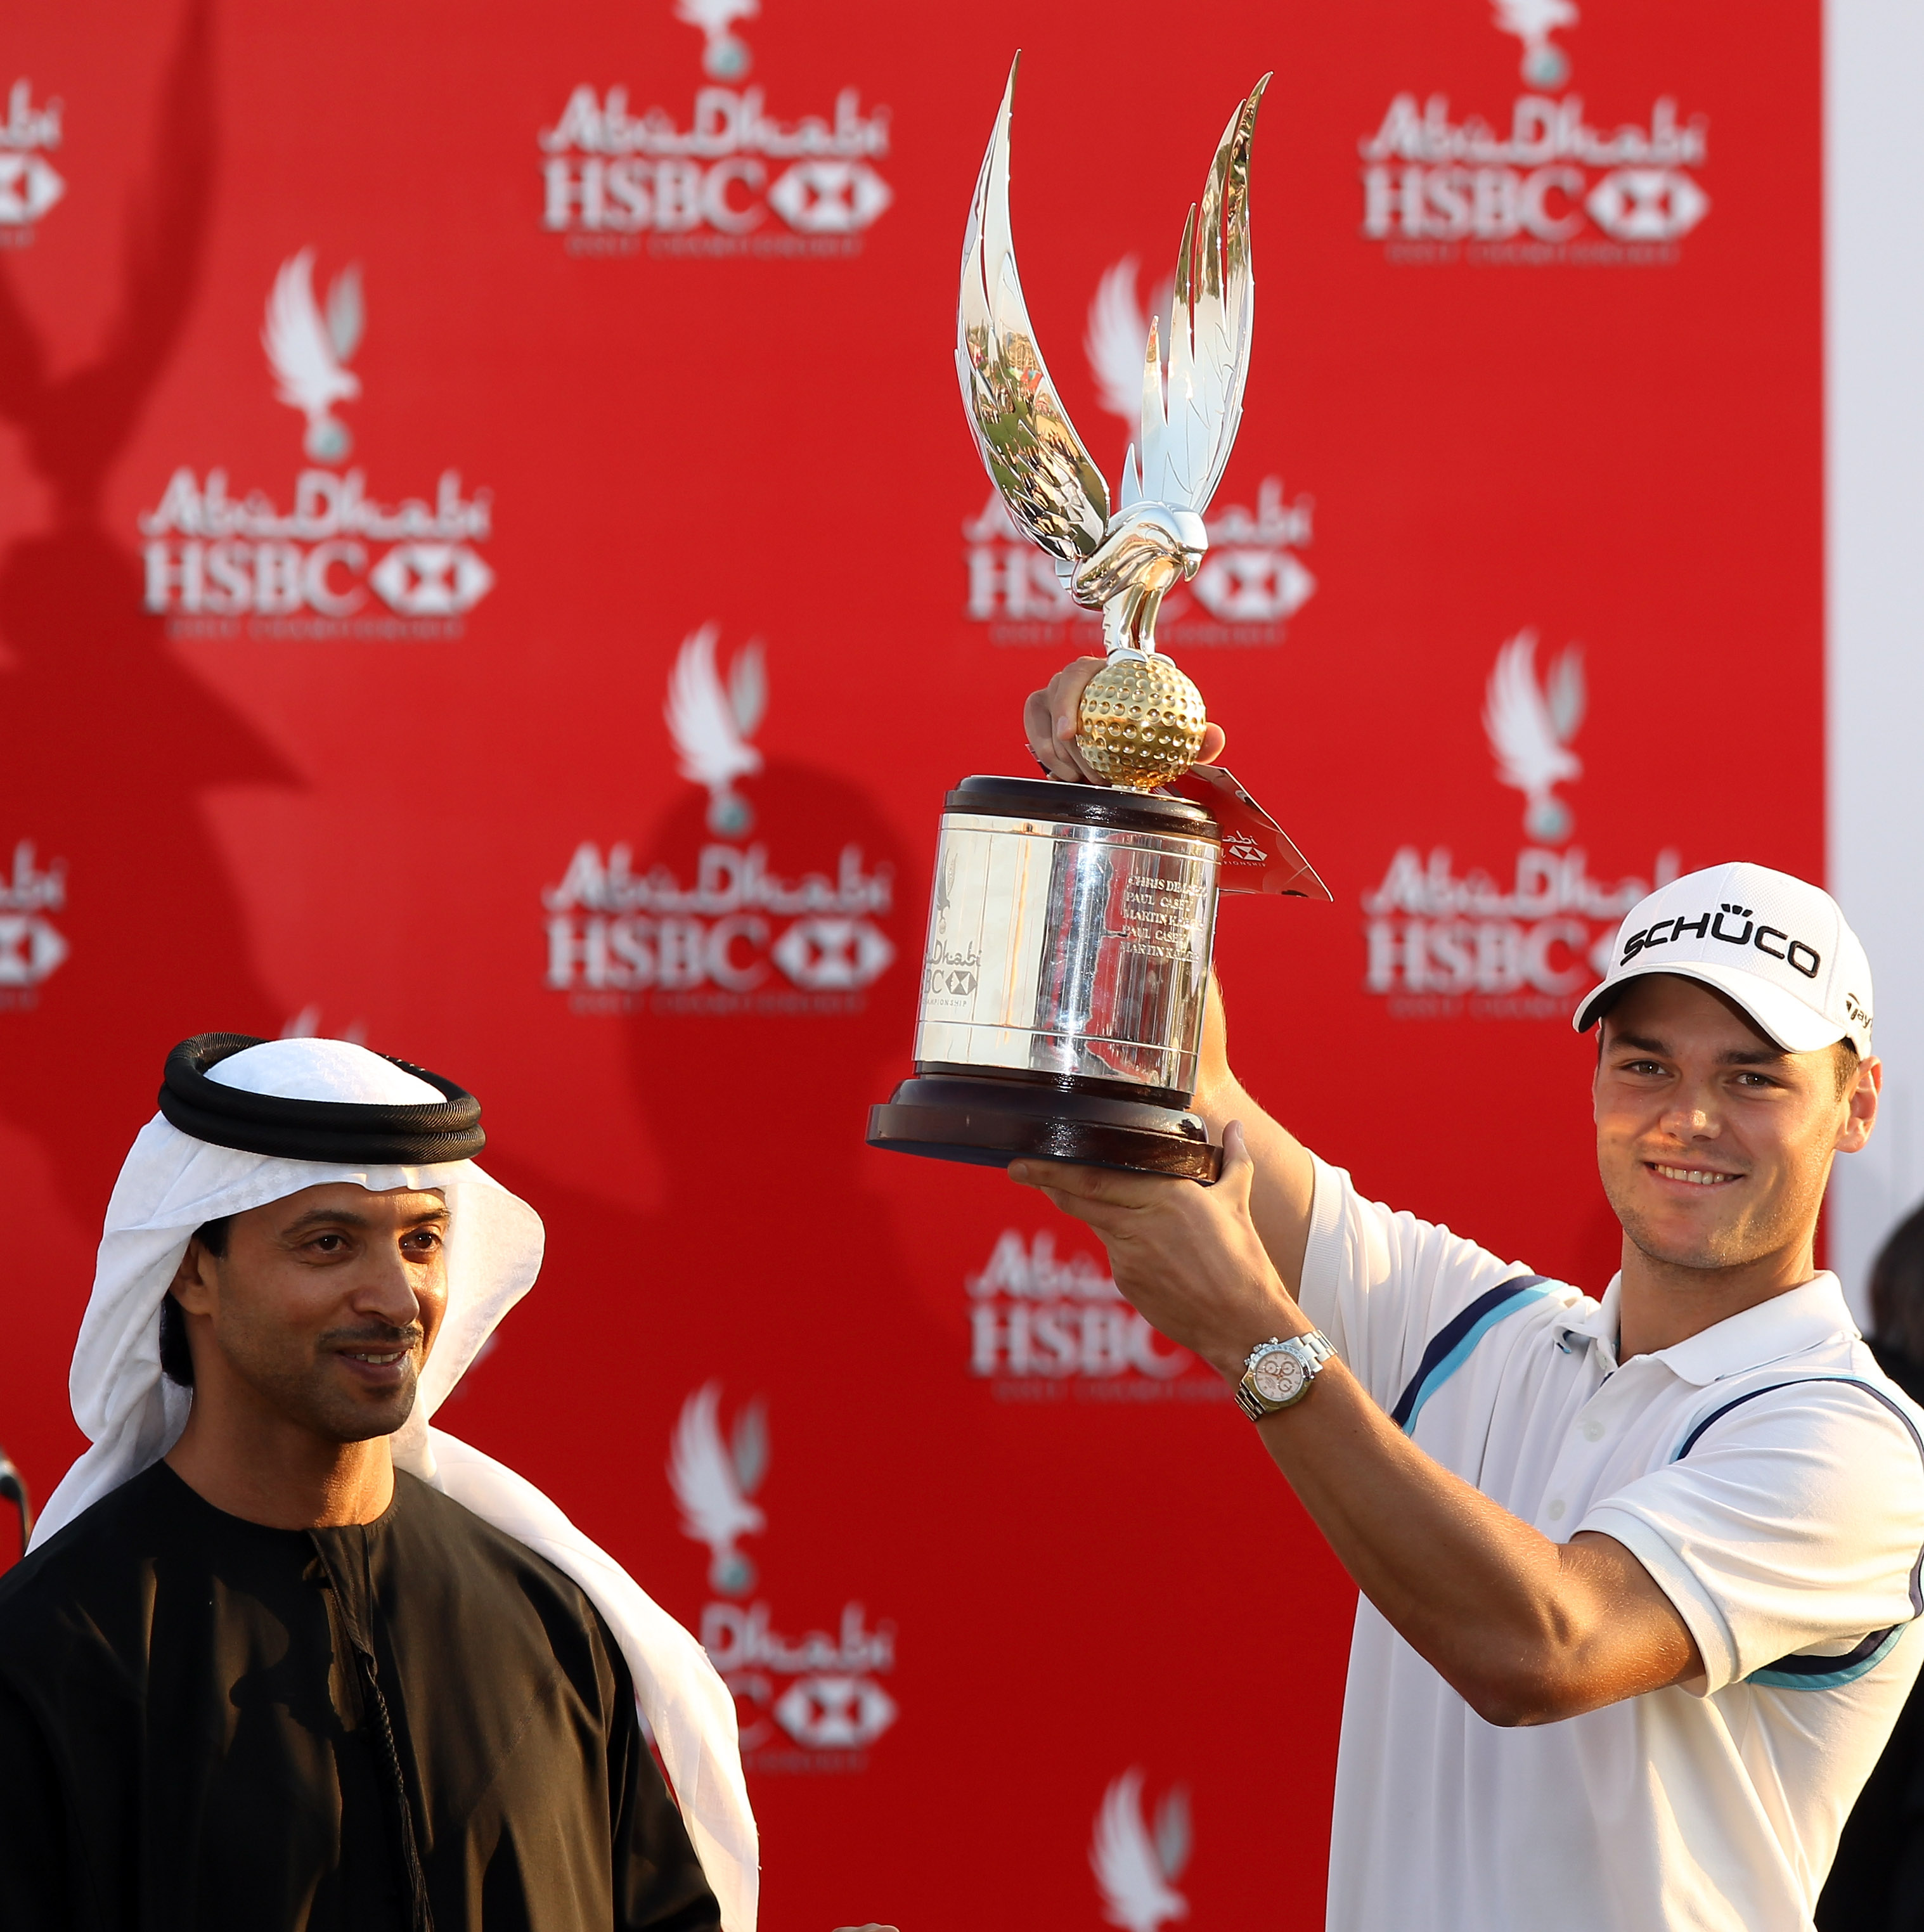 ABU DHABI, UNITED ARAB EMIRATES - JANUARY 23:  Martin Kaymer of Germany is presented with the trophy by His Highness Sheikh Hazza Bin Zayed Al Nahyan The National Security Advisor, Vice Chairman of the Executive Council, and Chairman of the Abu Dhabi Spor